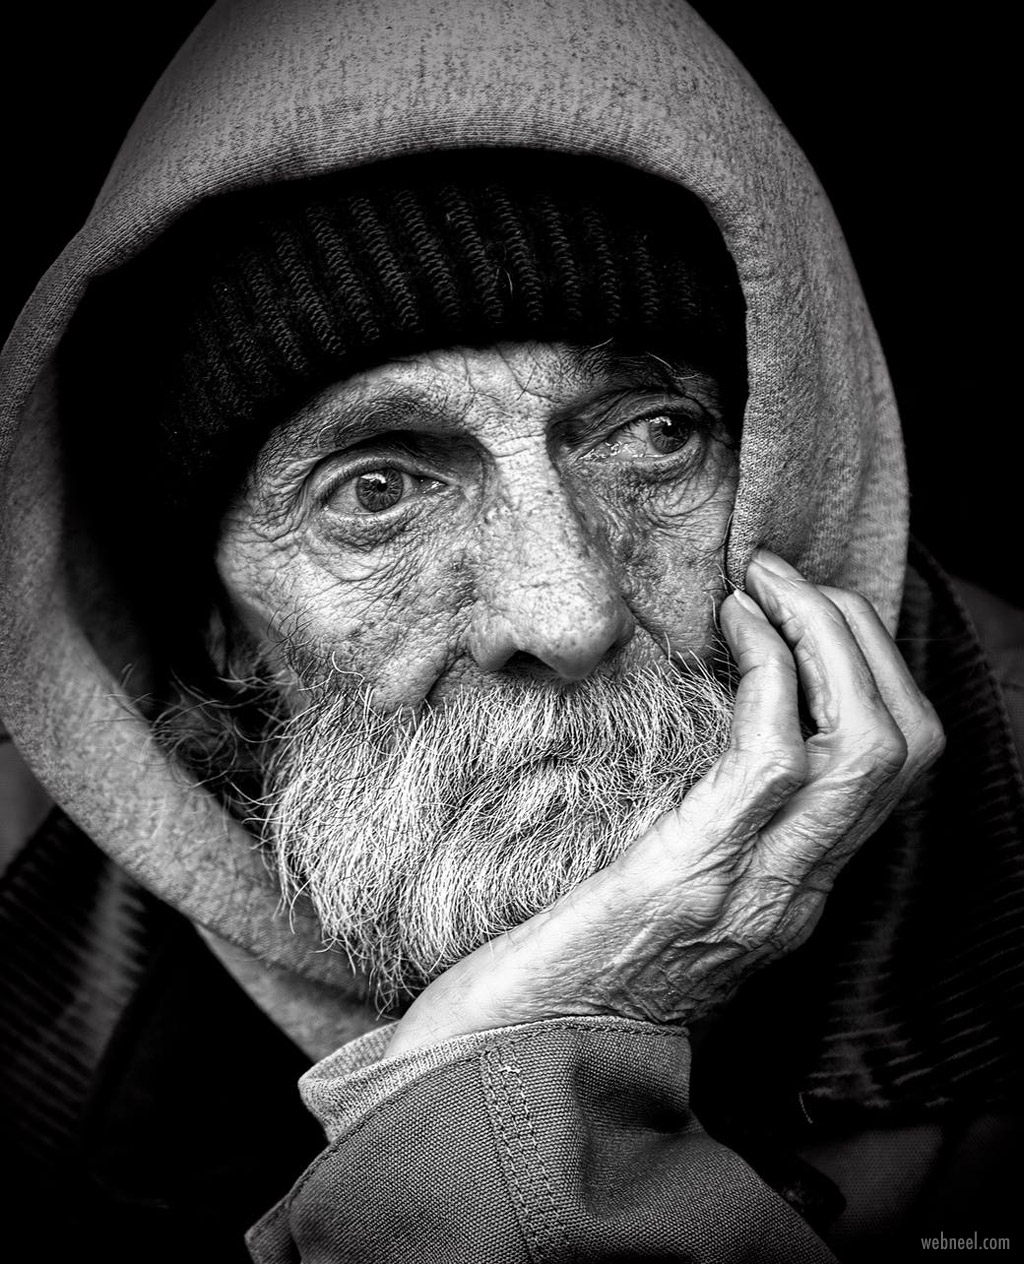 portrait photography black white homeless